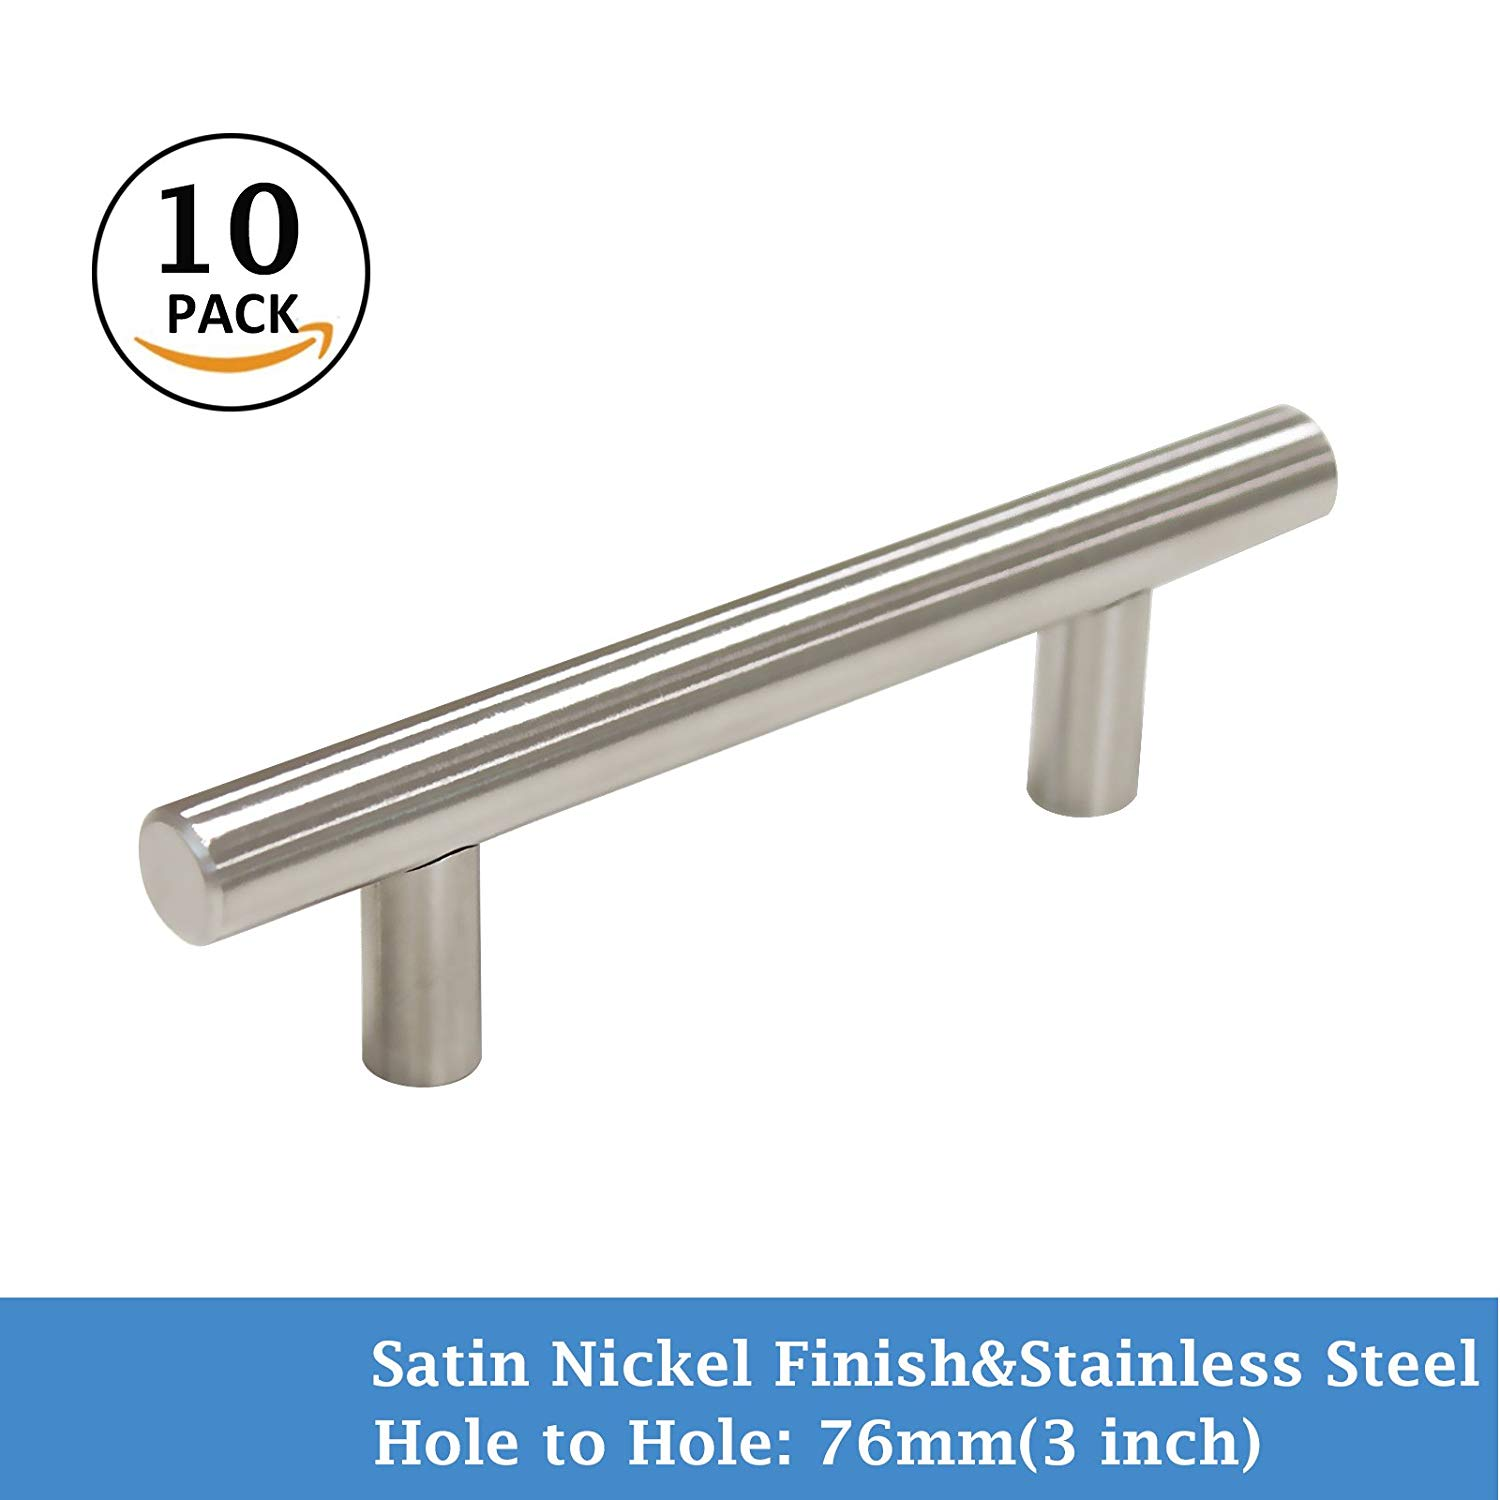 "10 Pack 3"" Hole Center Cabinet Pull Satin Nickel Finish Drawer Dresser T Bar Stainless Steel for Kitchen Cupboard Dresser Drawer"